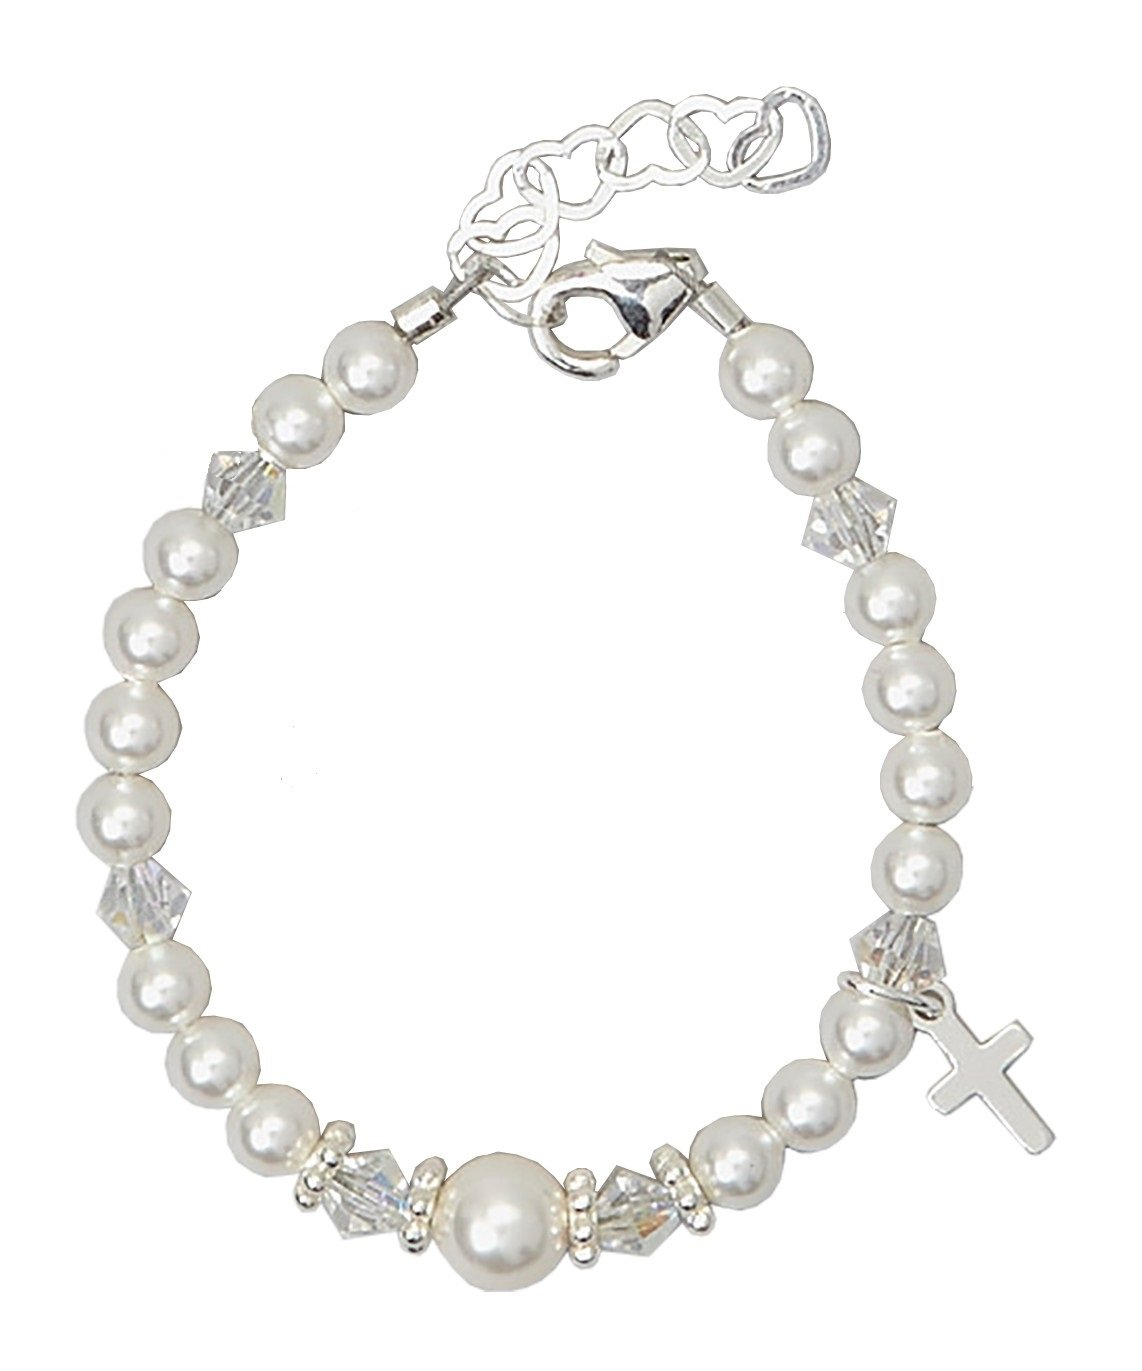 Christening Sterling Silver Cross Charm with White Swarovski Simulated Pearls and Crystal Keepsake Girl Bracelet (BCRS_S)